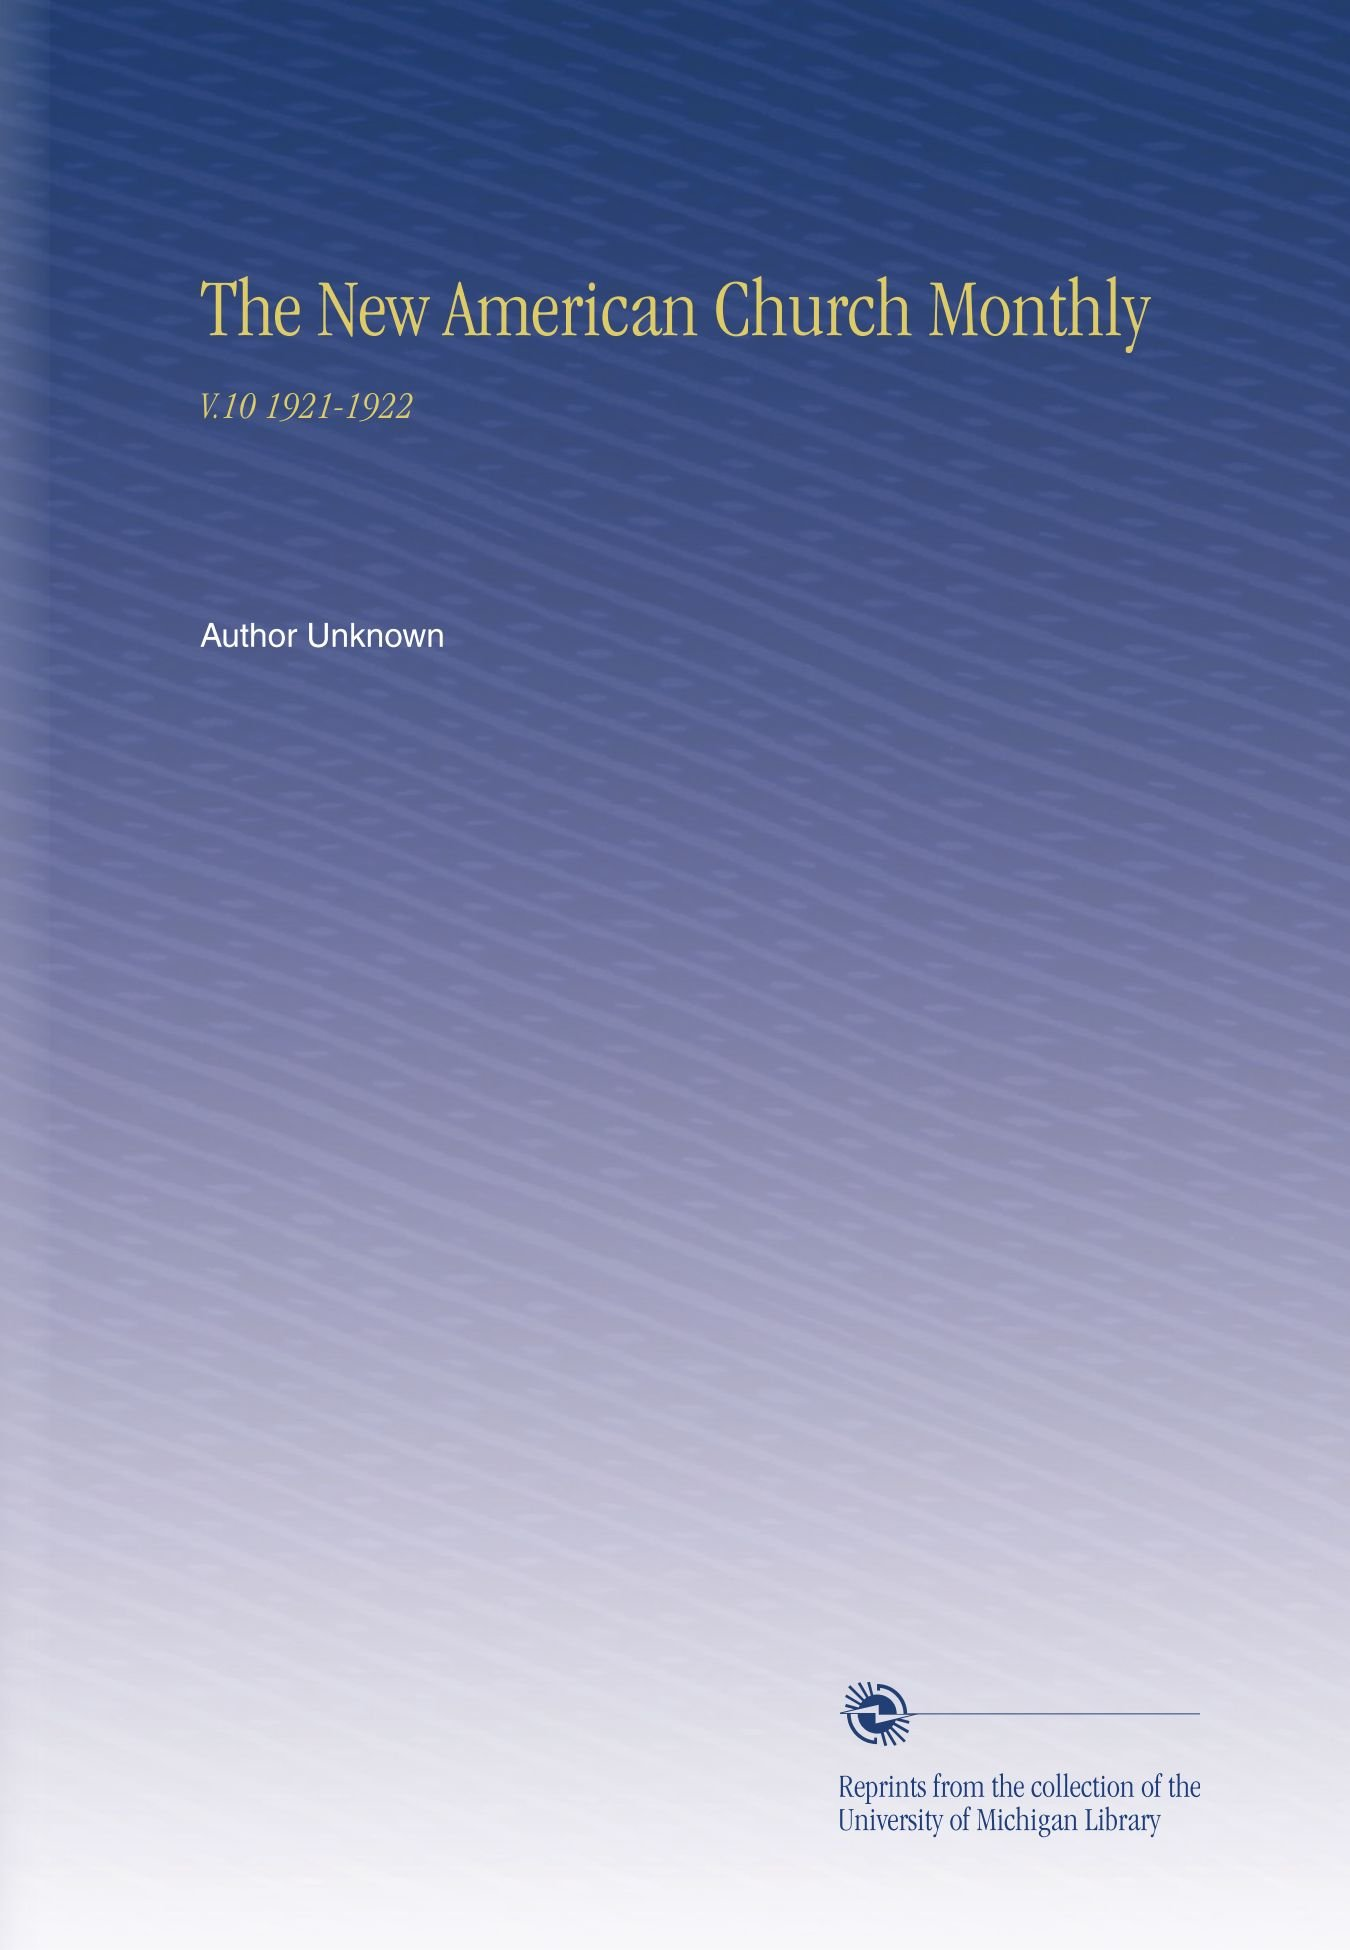 Download The New American Church Monthly: V.10 1921-1922 PDF